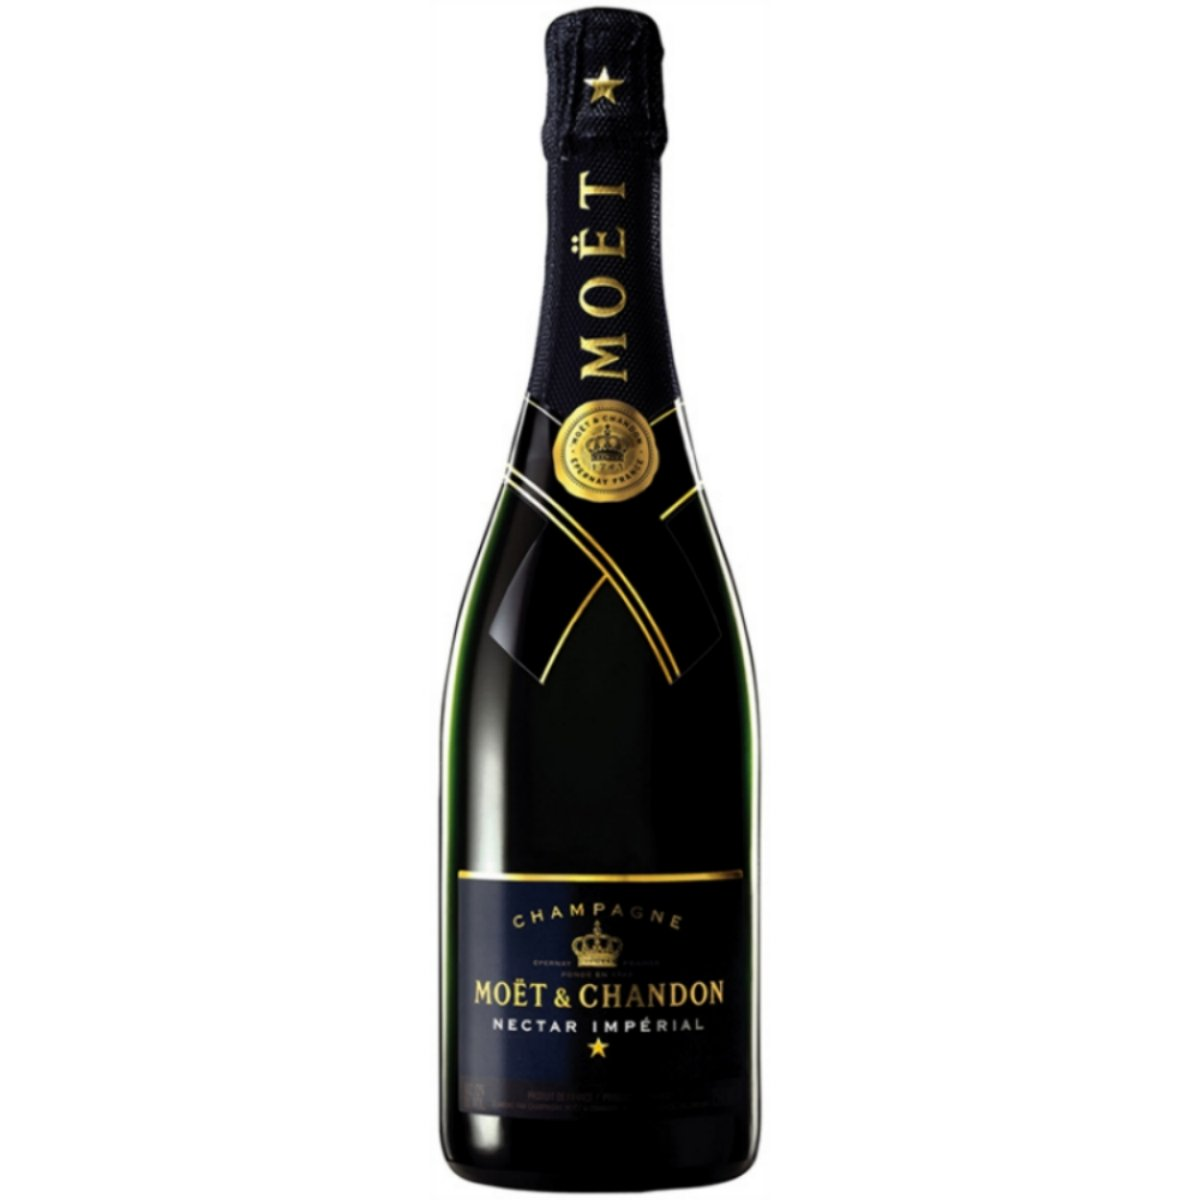 moet chandon nectar imperial champagne 750ml. Black Bedroom Furniture Sets. Home Design Ideas